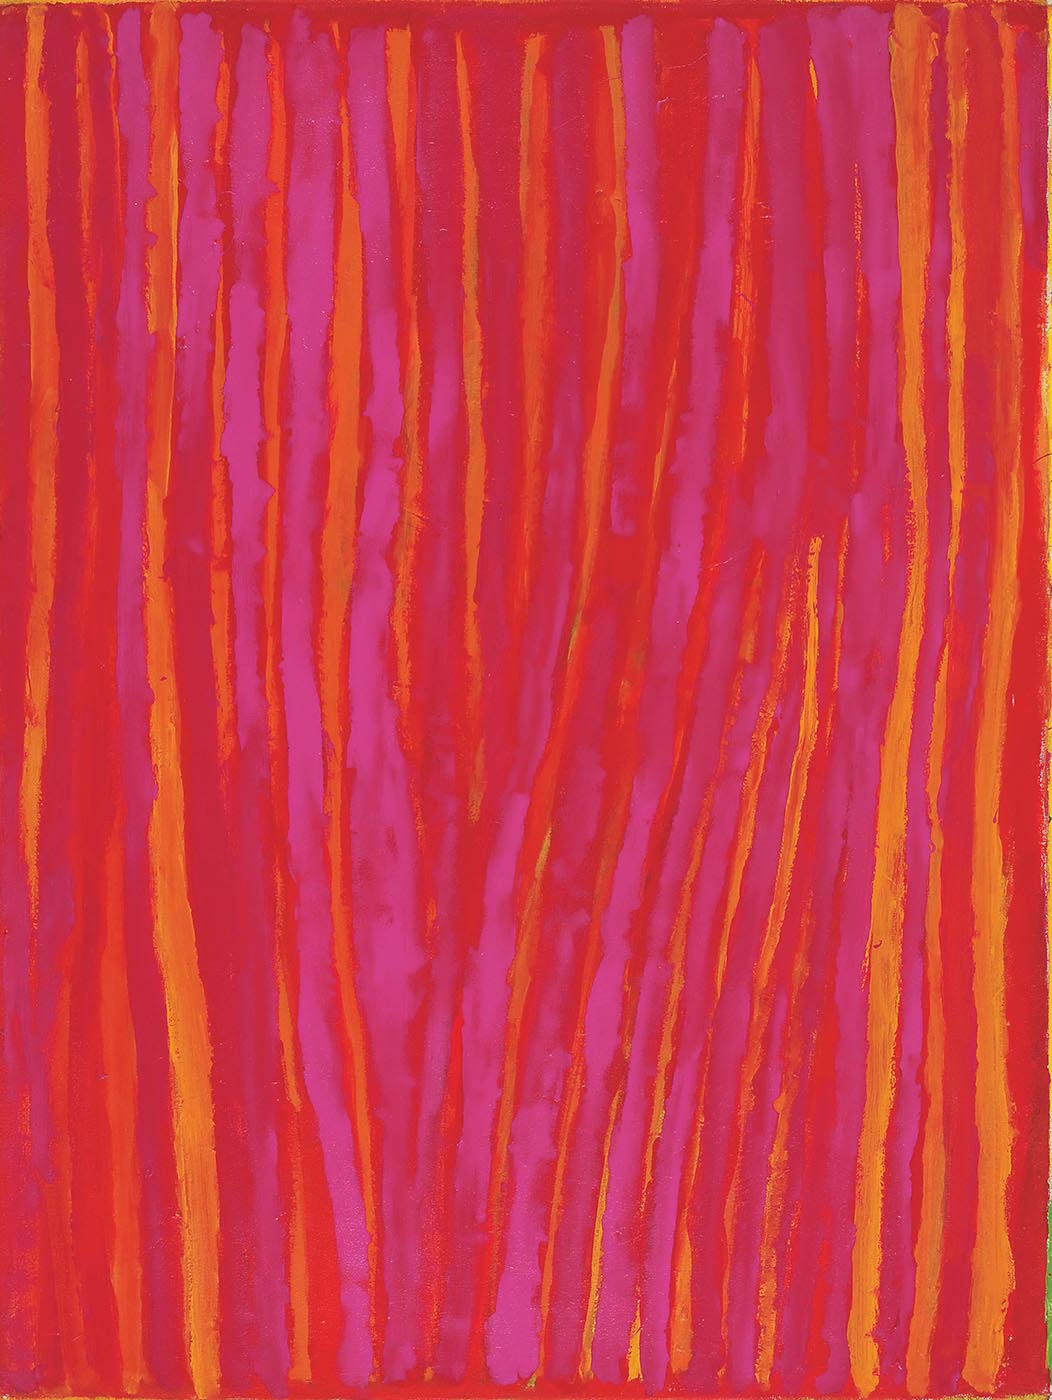 A painting on canvas with purple-pink, yellow, red and orange vertical stripes. The central section has less yellow and orange, and in the lower part the stripes are closer together and converge towards the centre bottom edge.